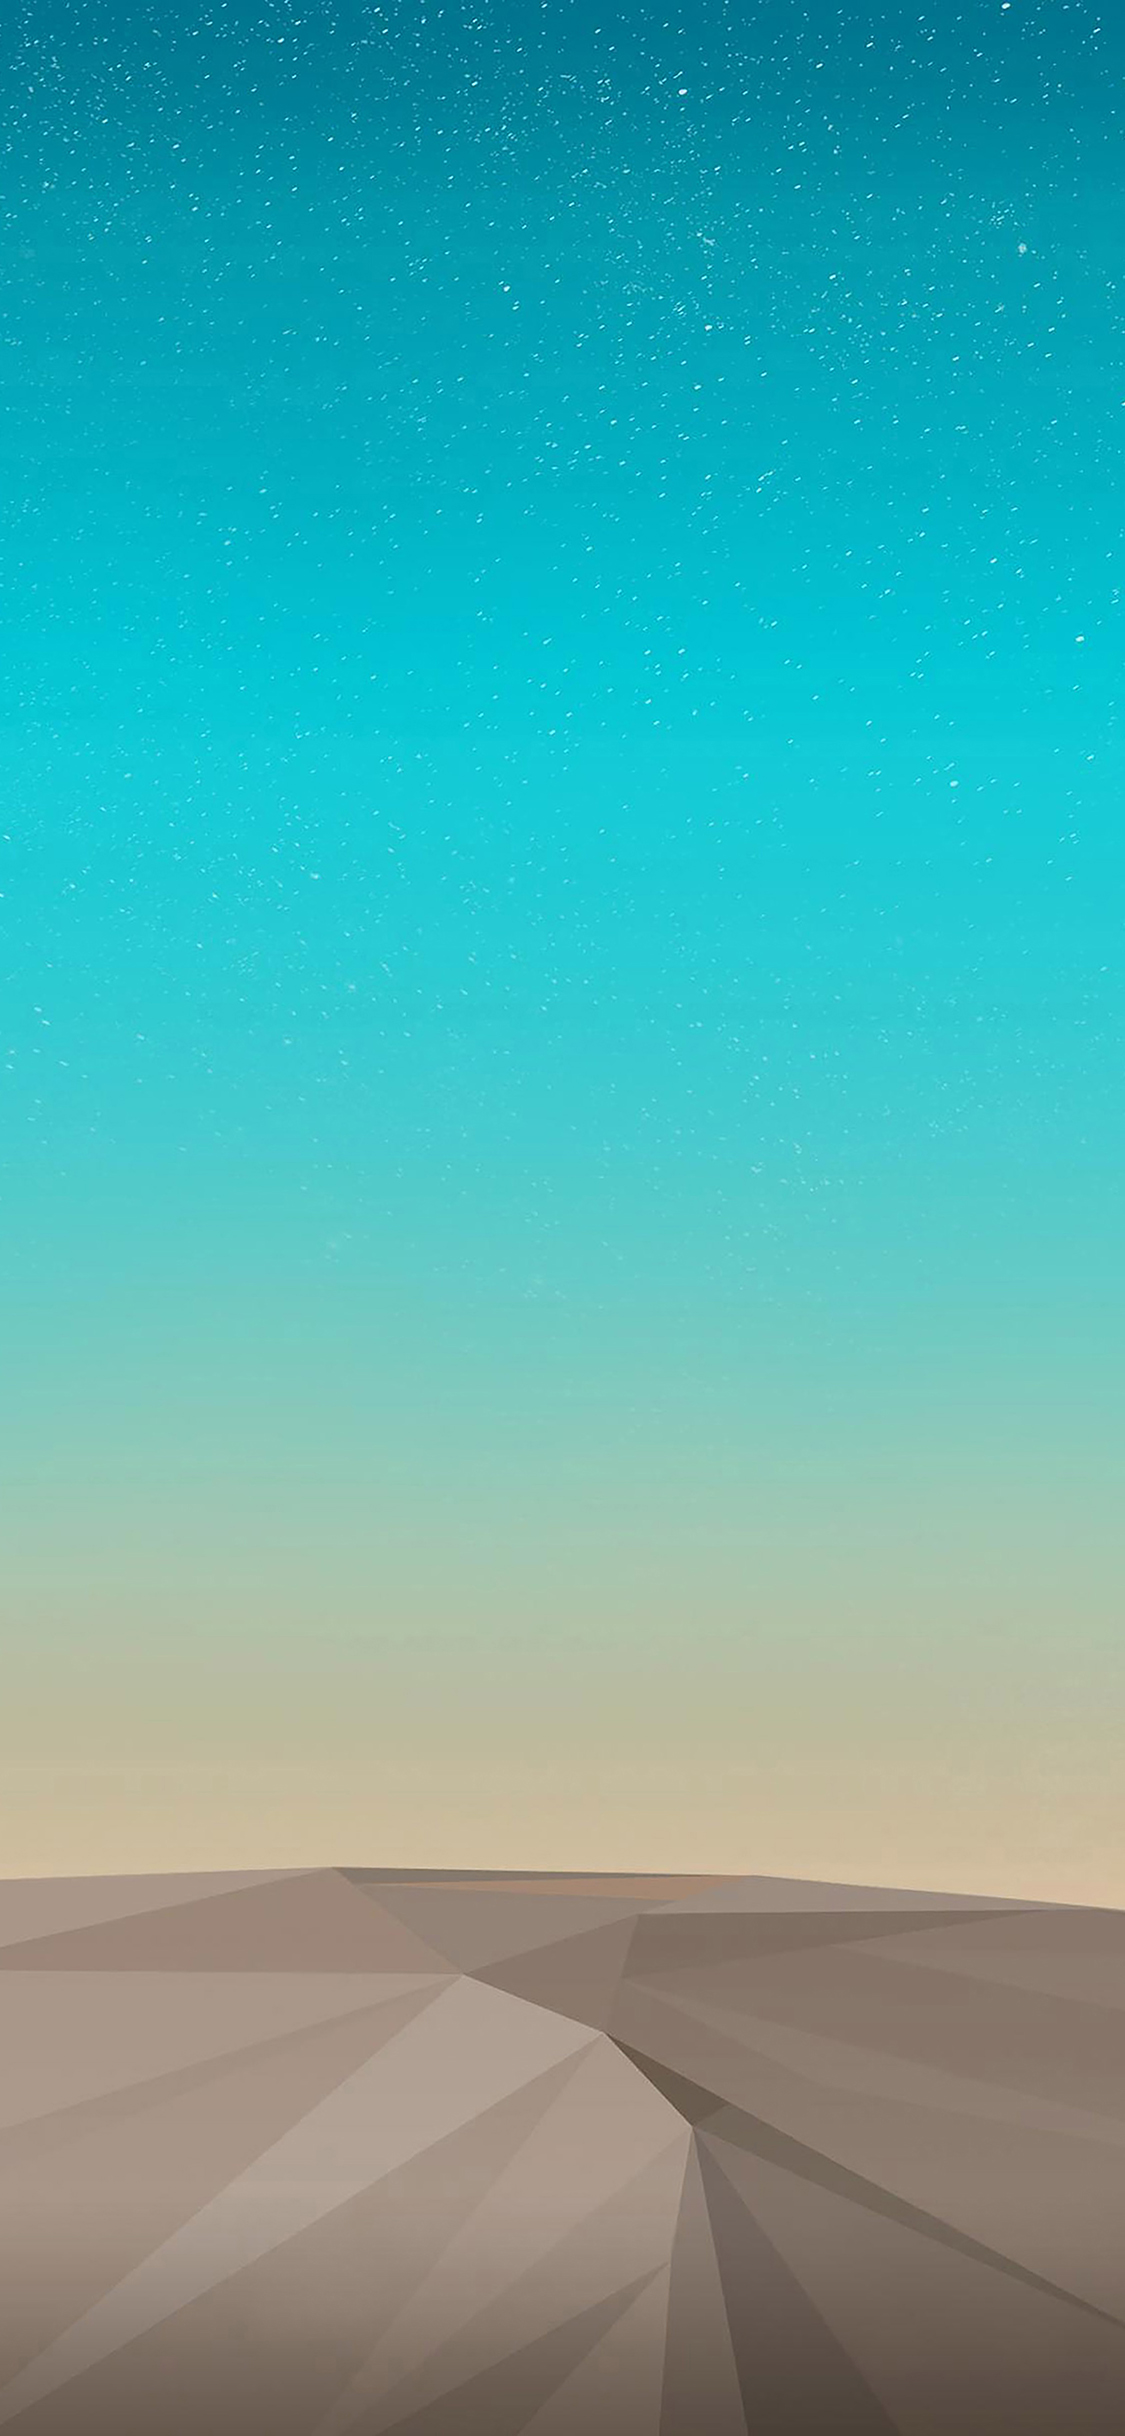 iPhoneXpapers.com-Apple-iPhone-wallpaper-va06-lg-g3-end-of-earth-pattern-minimal